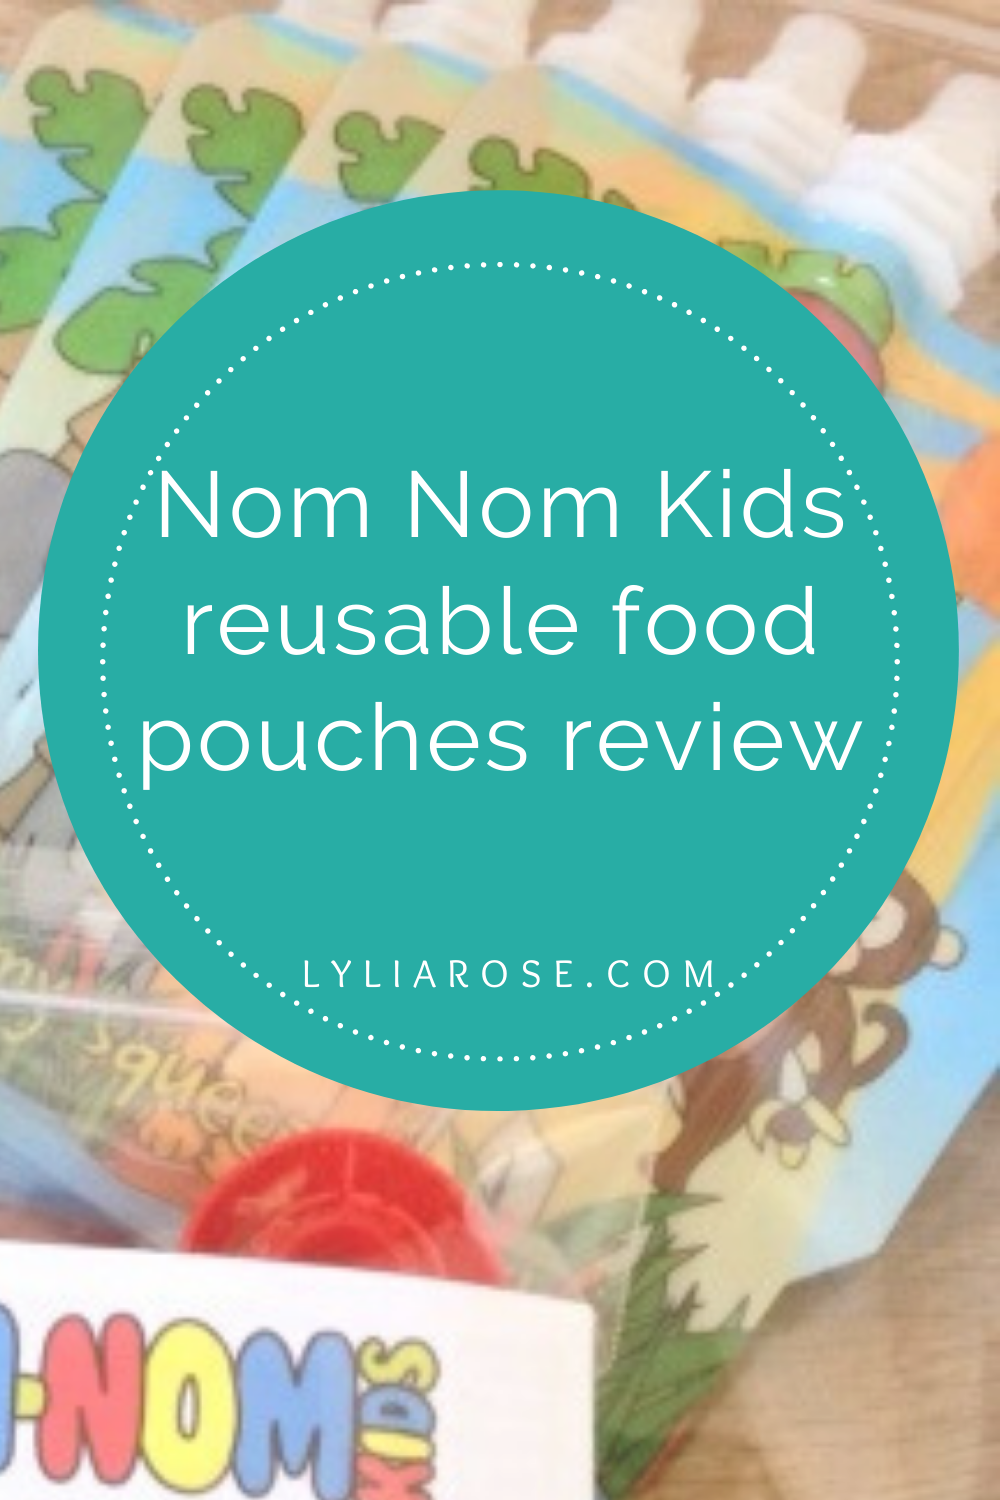 Nom Nom Kids reusable food pouches review (2)